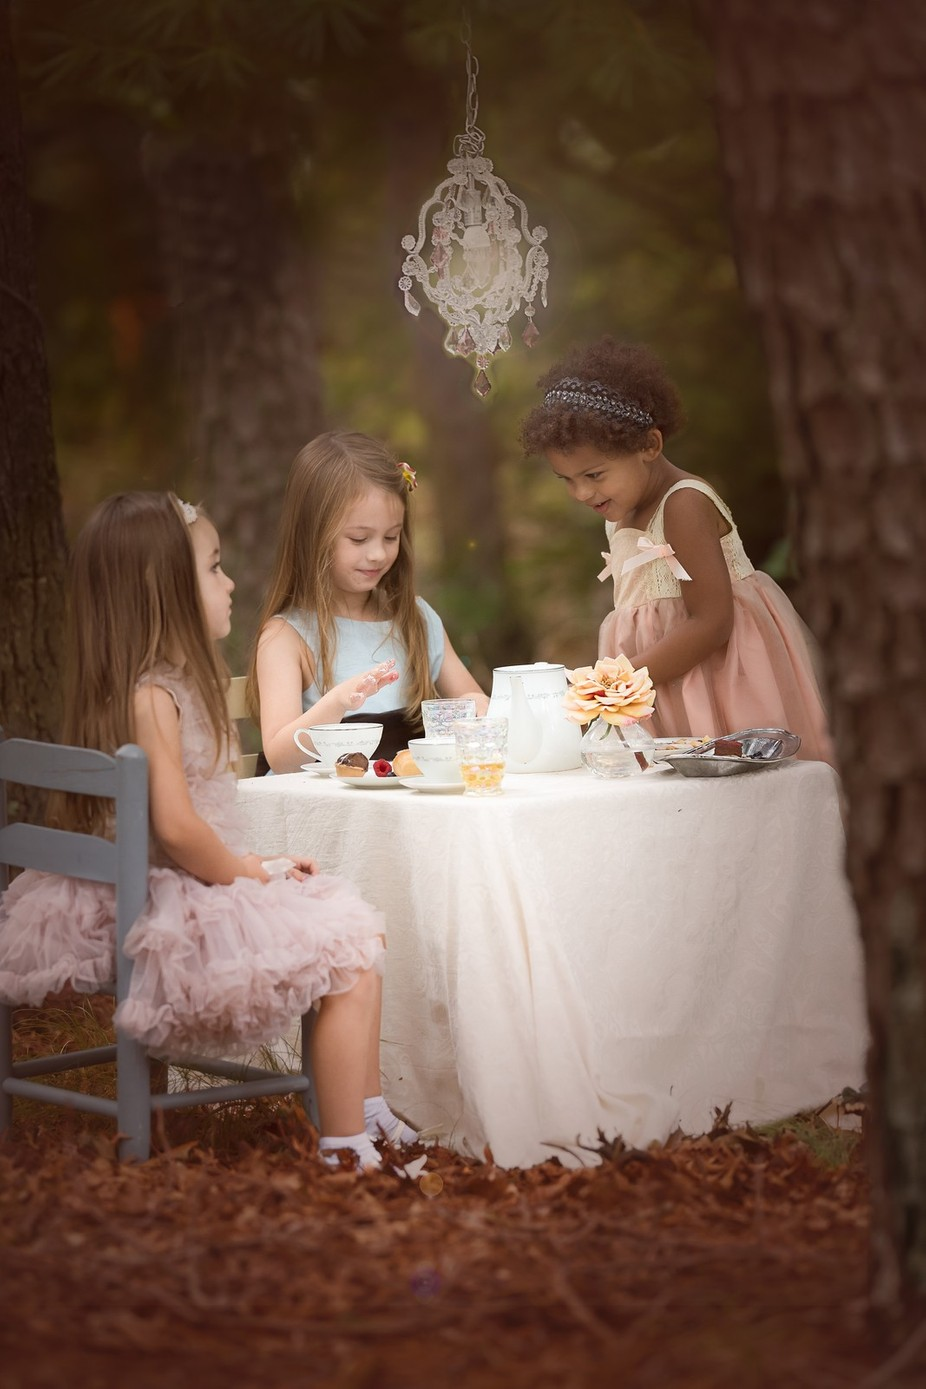 Tea Party by katphotogirl - Youngsters Photo Contest